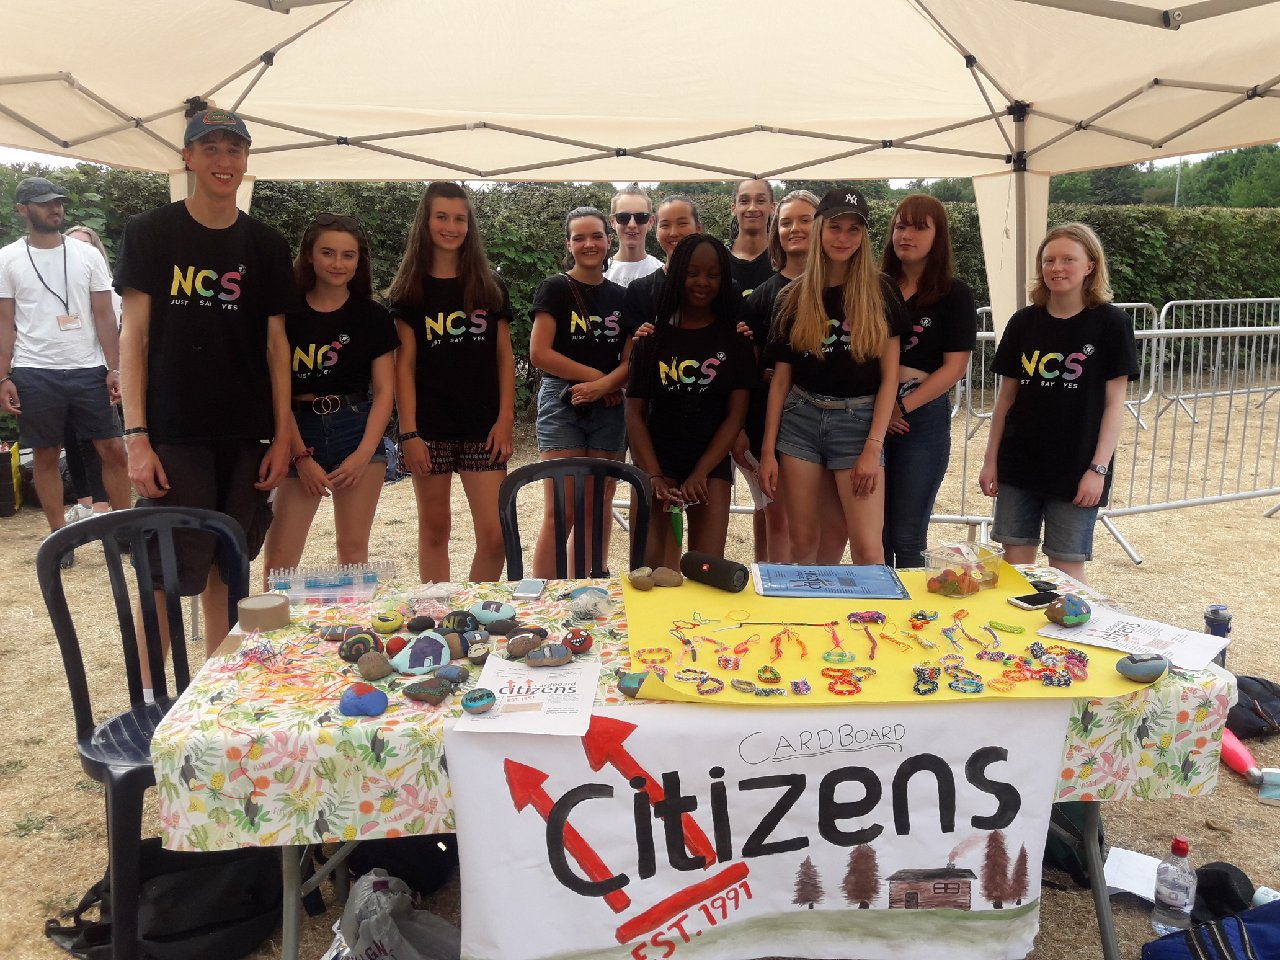 Young people from St Albans and Hertsmere demonstrate their community spirit during their summer holidays with Hertfordshire County Council's youth service, YC Hertfordshire